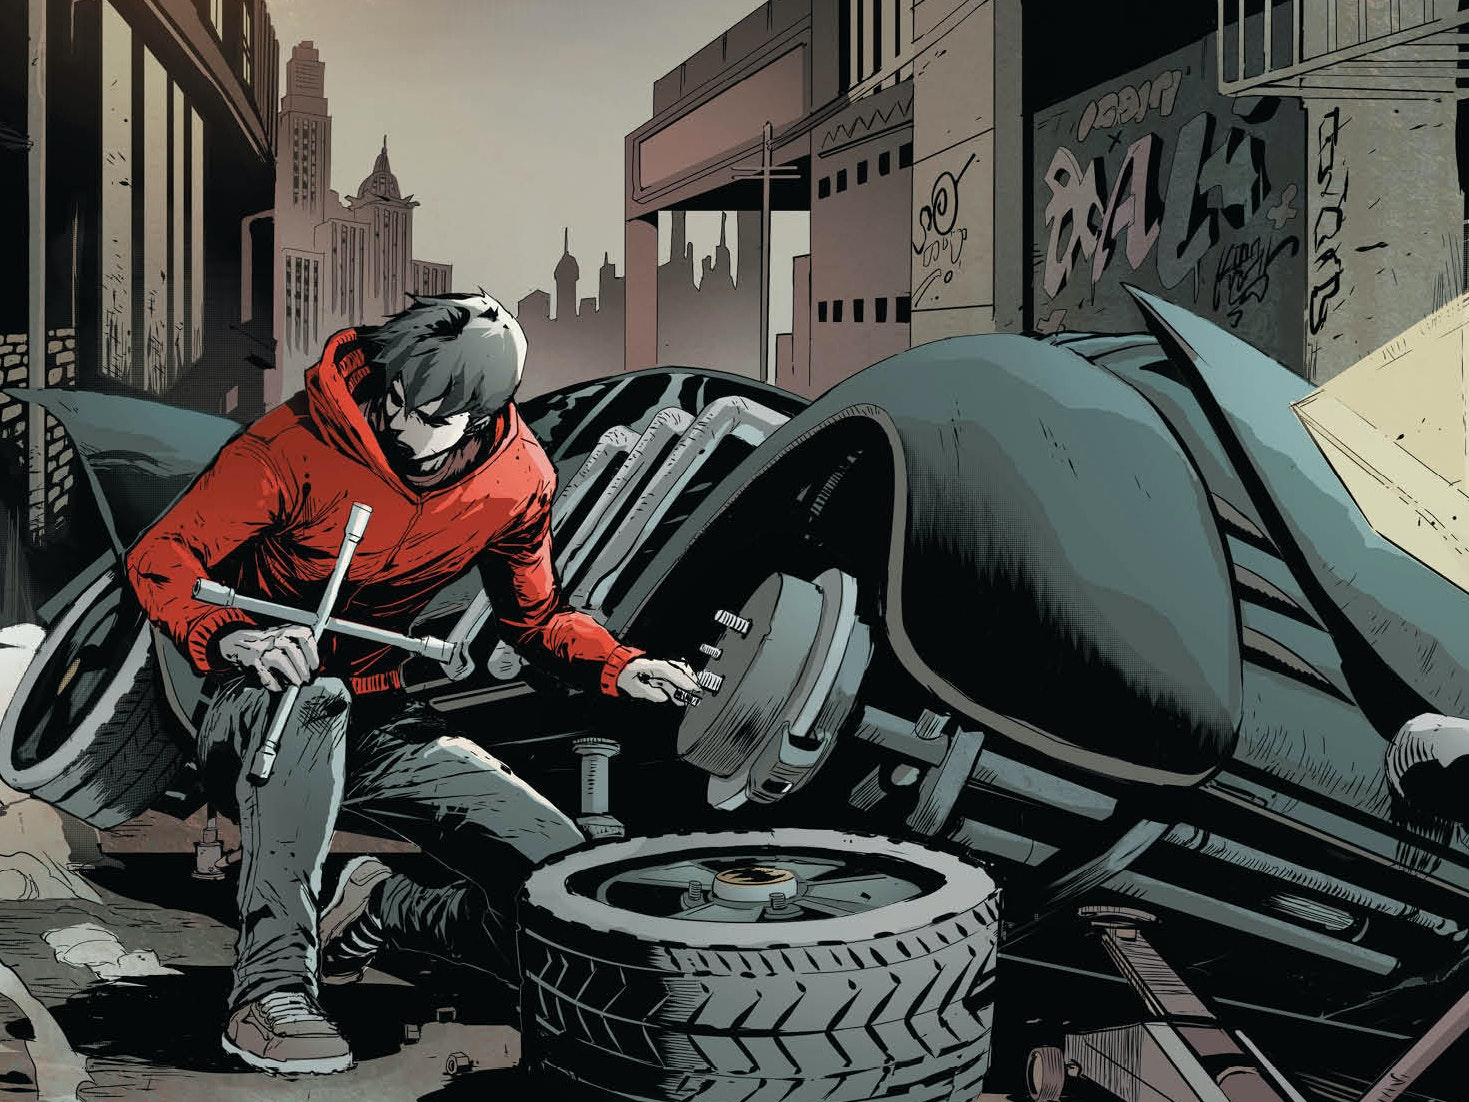 Jason Todd Meets Batman in 'Red Hood and the Outlaws' Preview